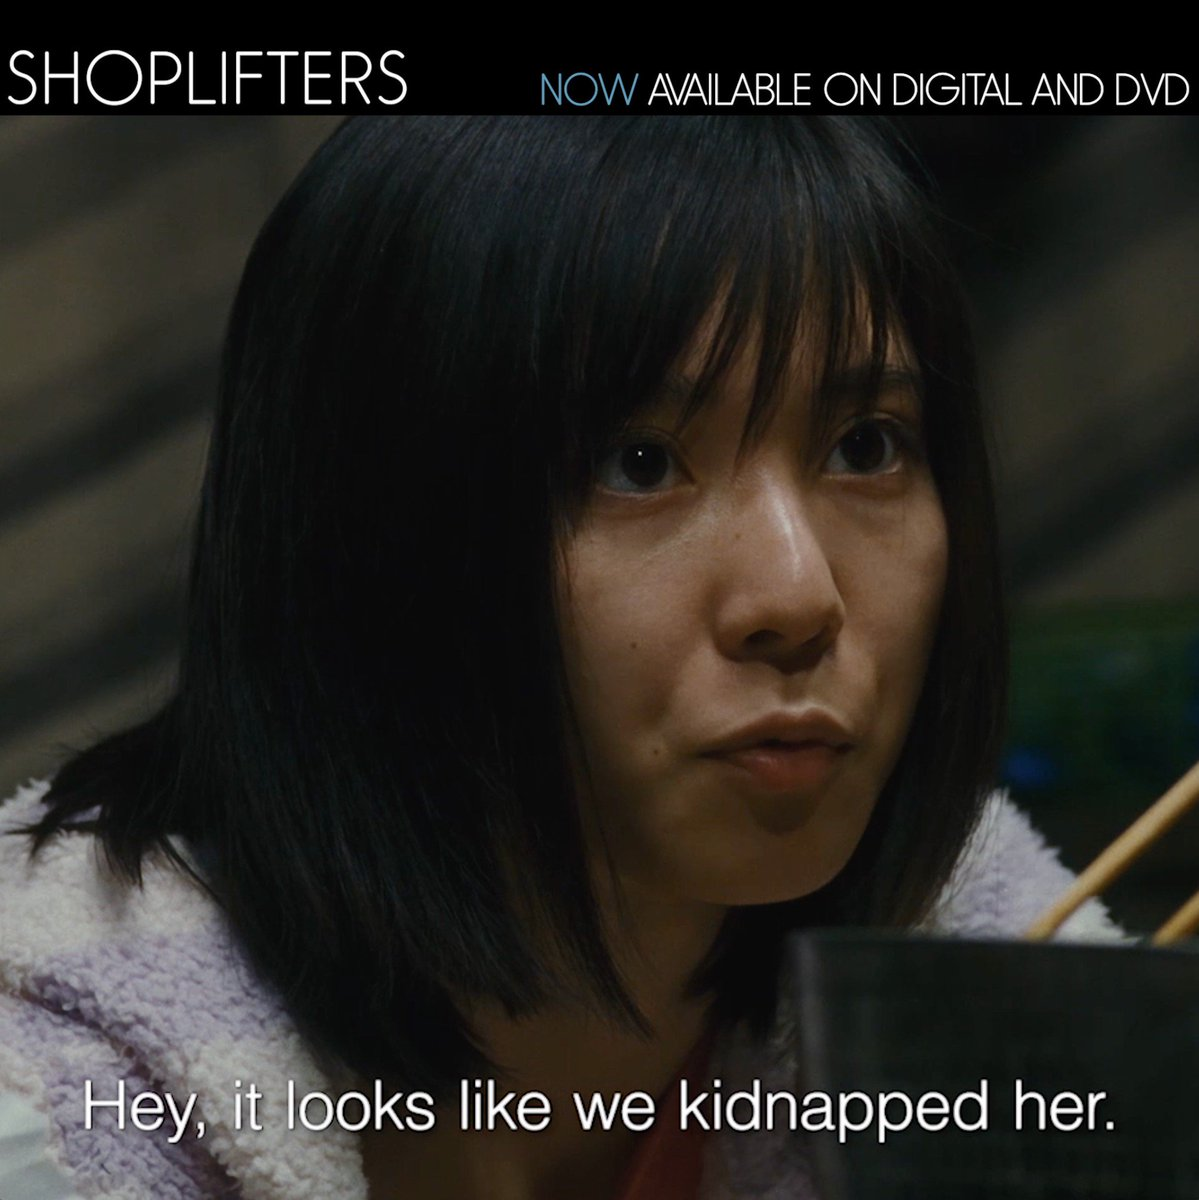 The Oscar nominated @Shoplifters is now available on digital and DVD. Watch today: http://bit.ly/OwnShoplifters